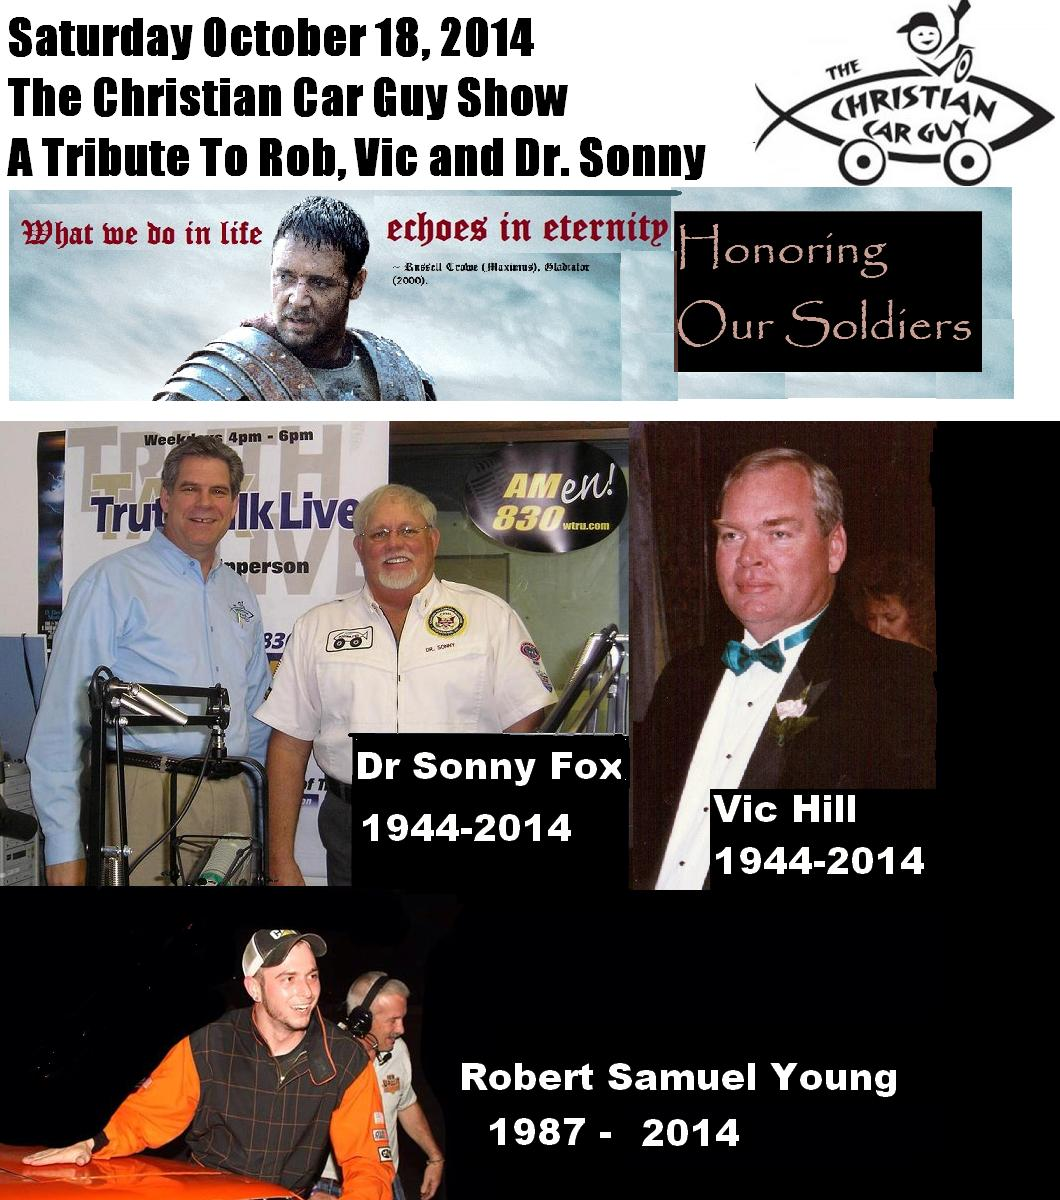 A Tribute To Our Soldiers: Rob Young, Vic Hill and Dr. Sonny Fox